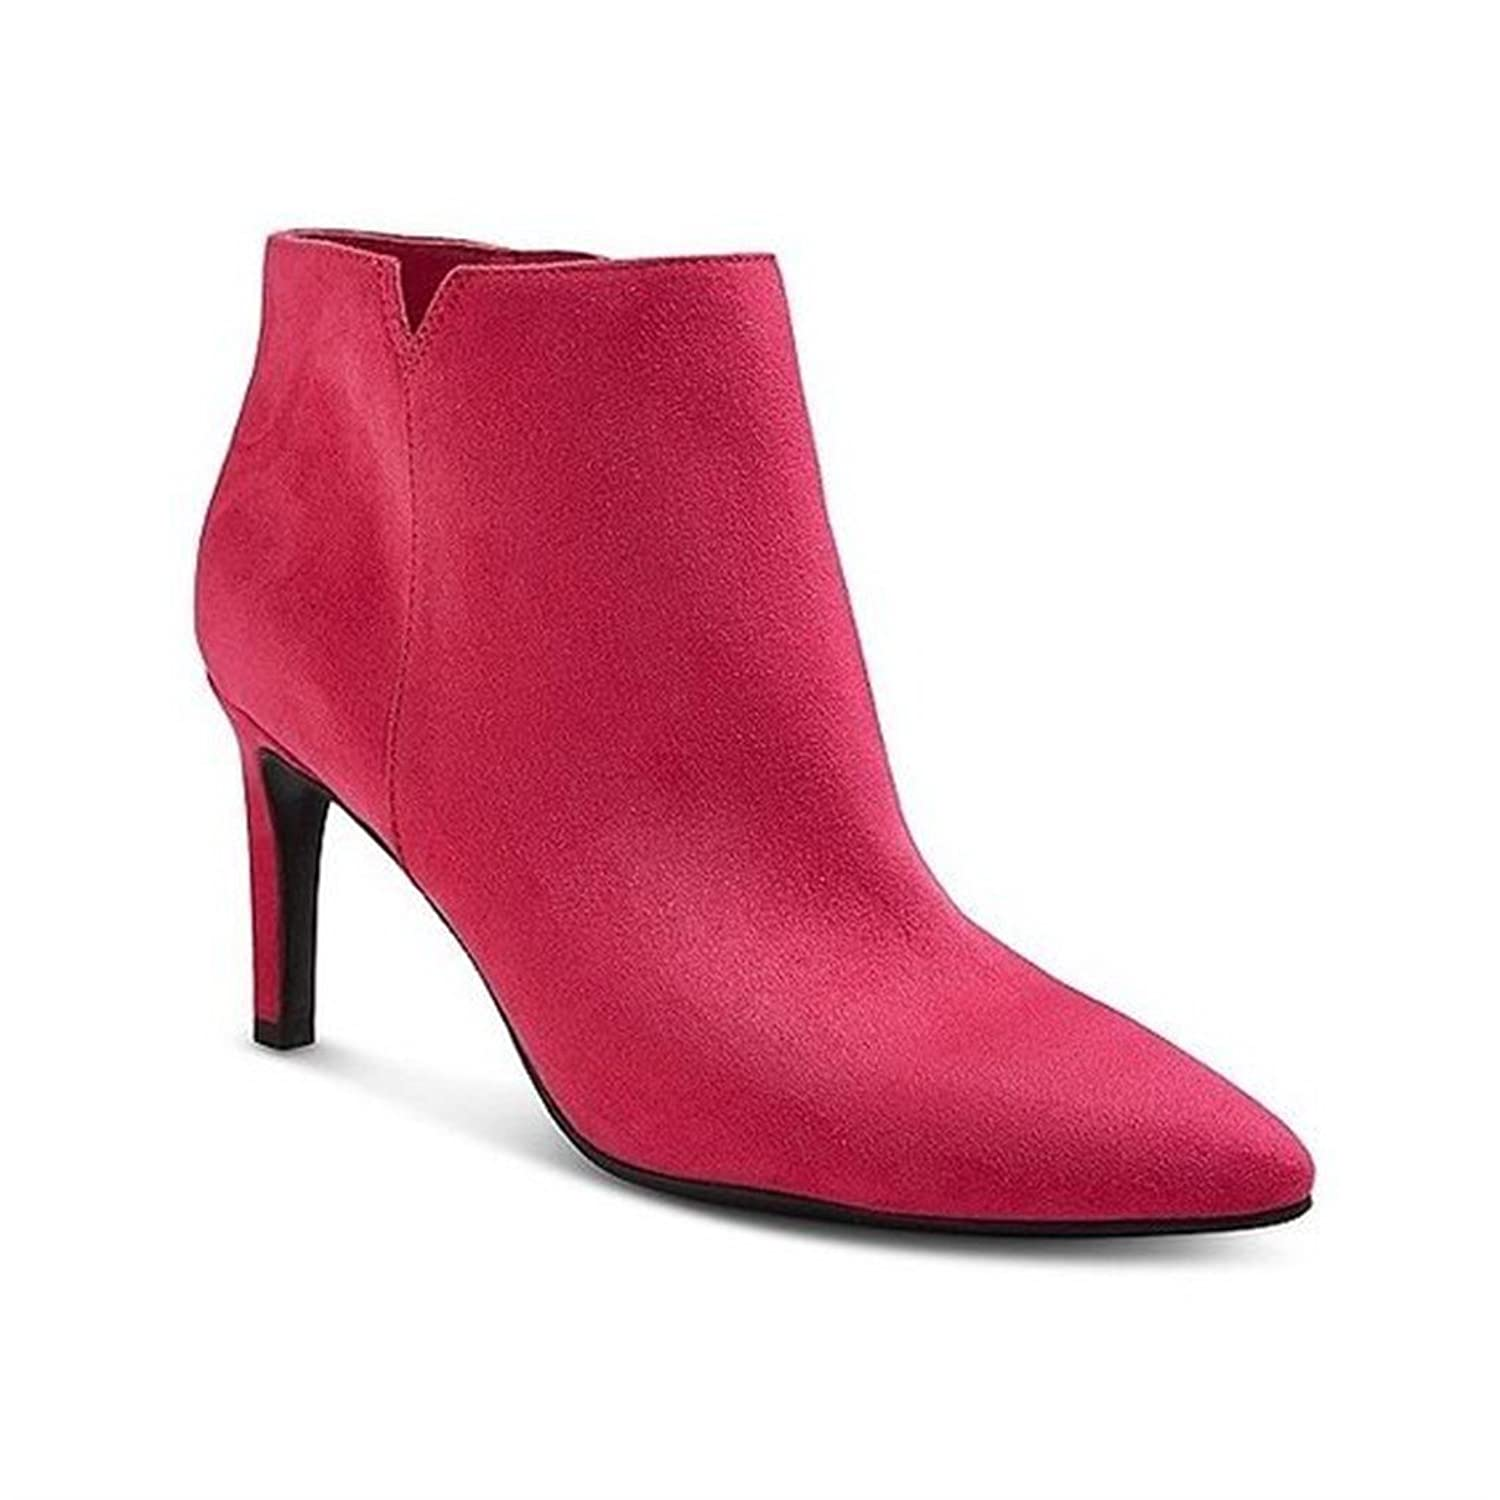 Sam & Libby Women's Audrey Pink Ankle Booties